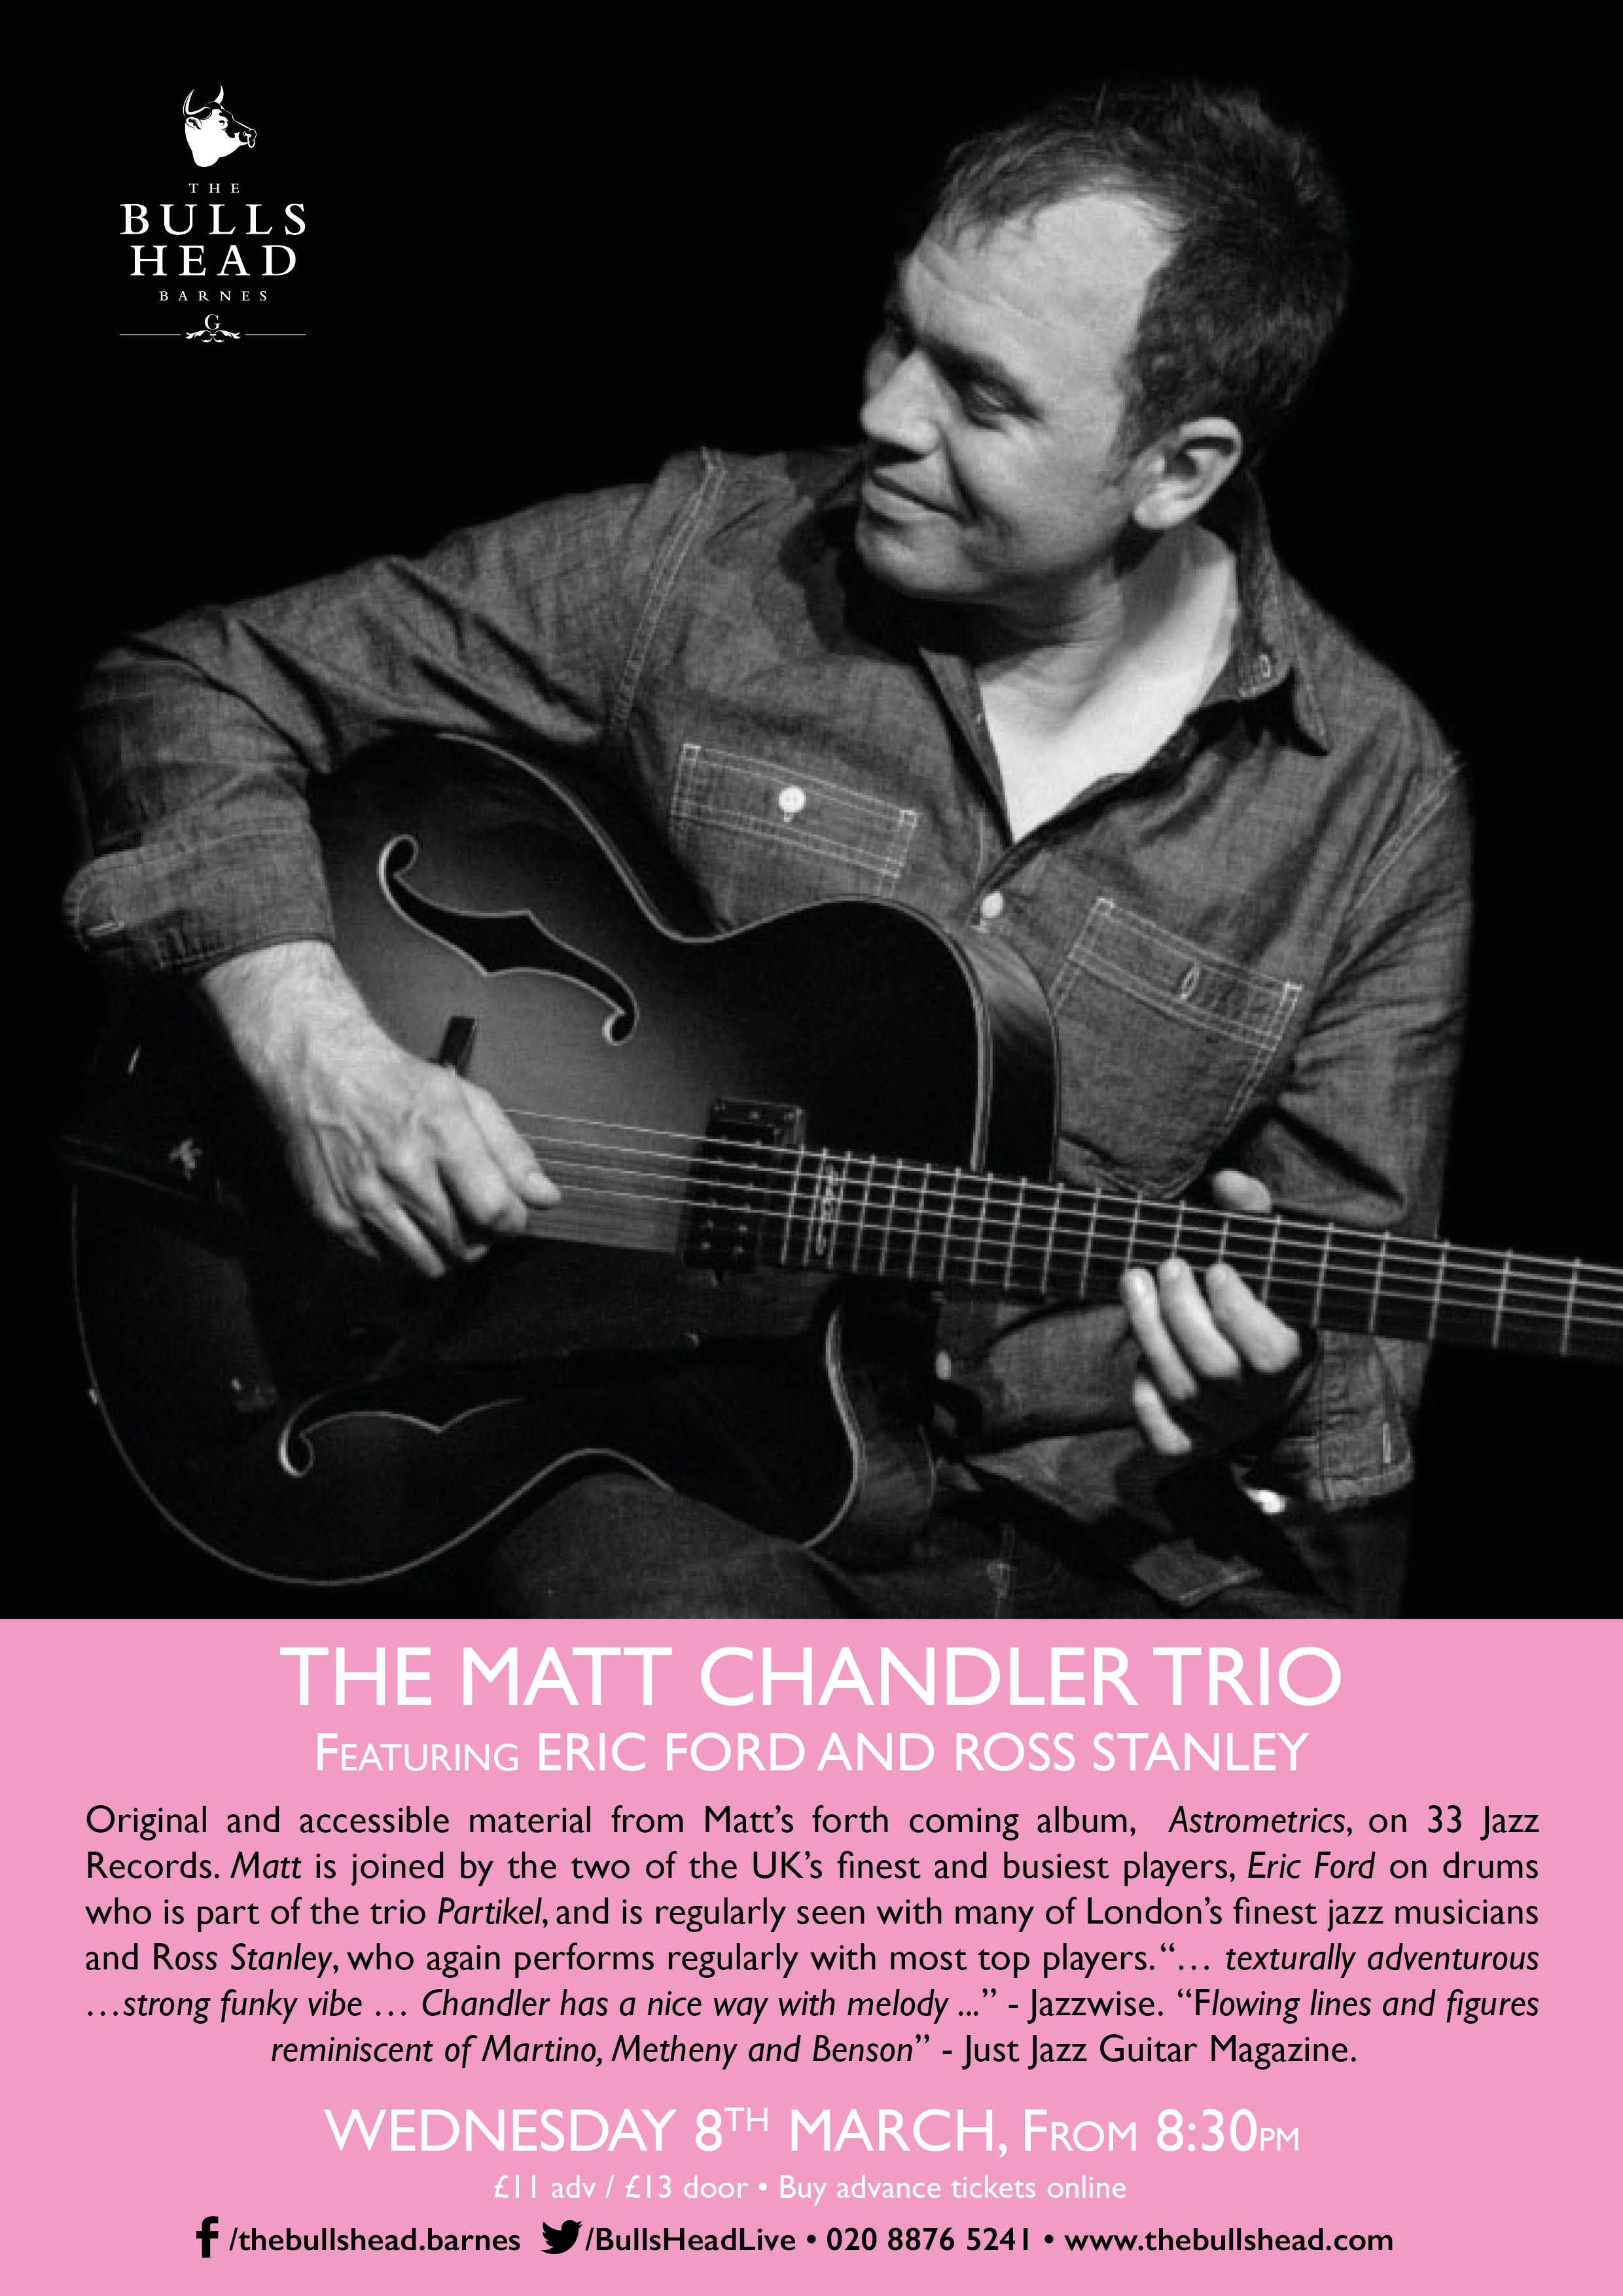 The Matt Chandler Trio ft Eric Ford and Ross Stanley